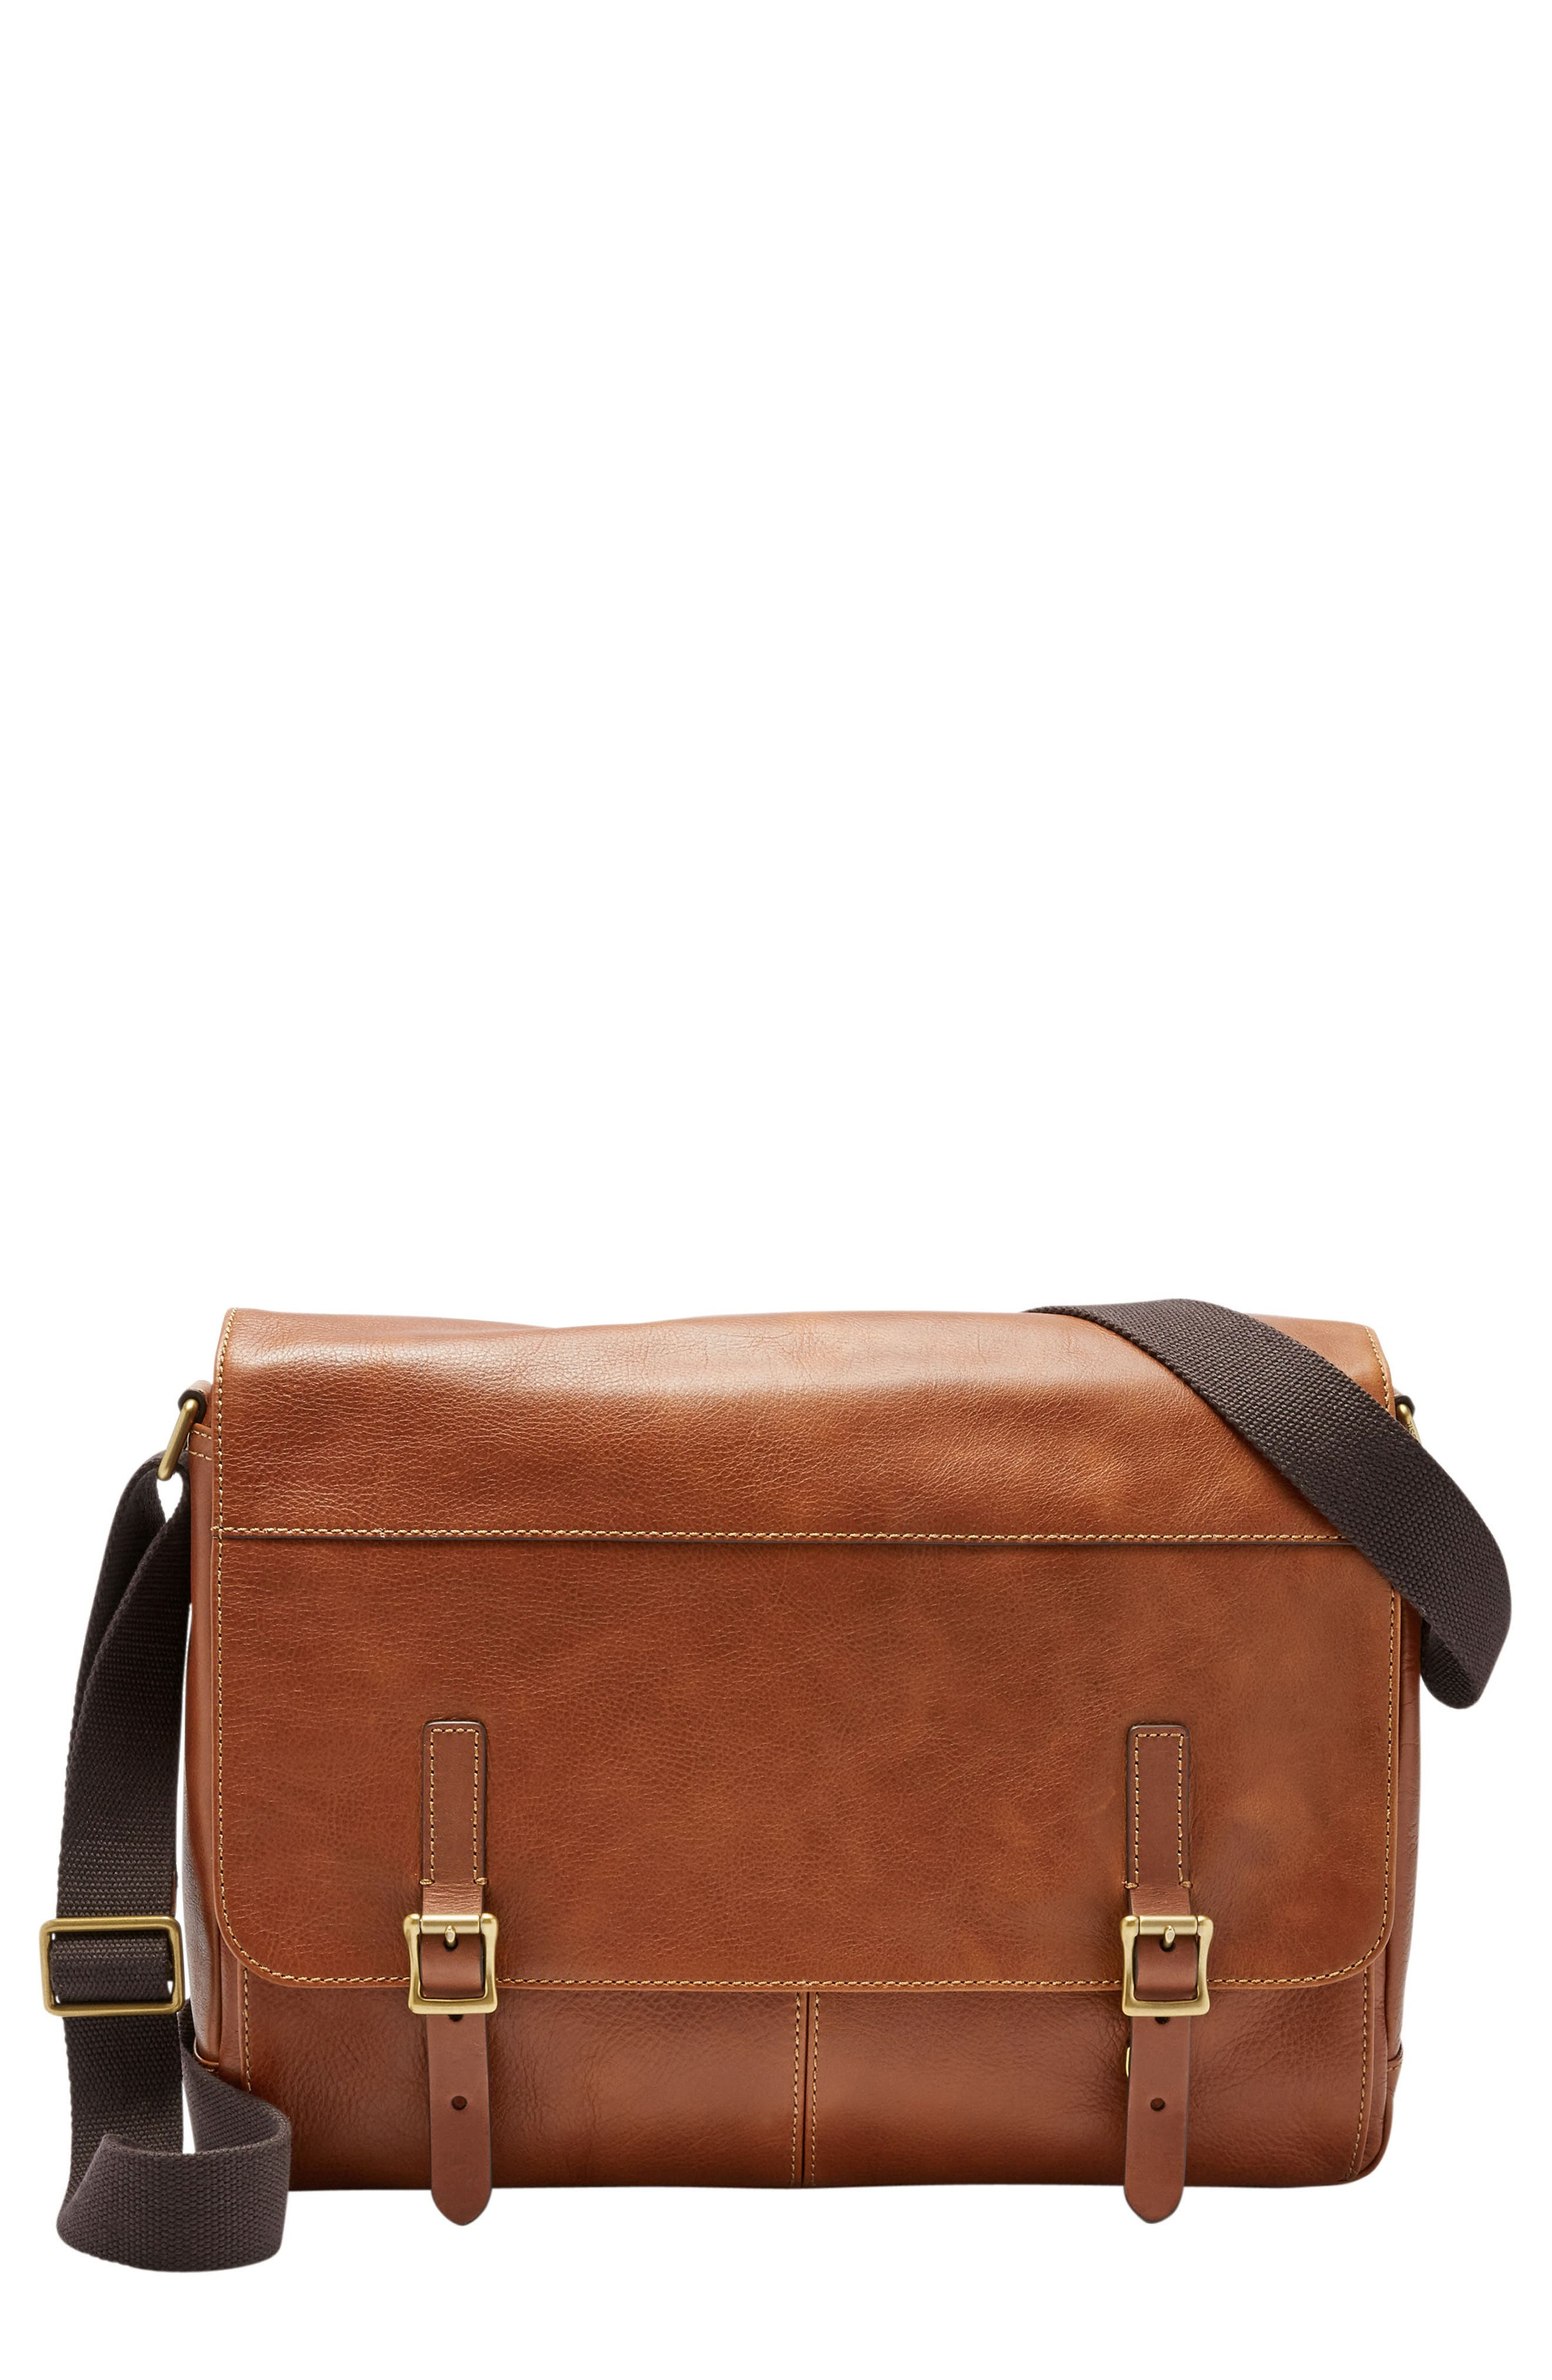 Alternate Image 1 Selected - Fossil 'Defender' Leather Messenger Bag